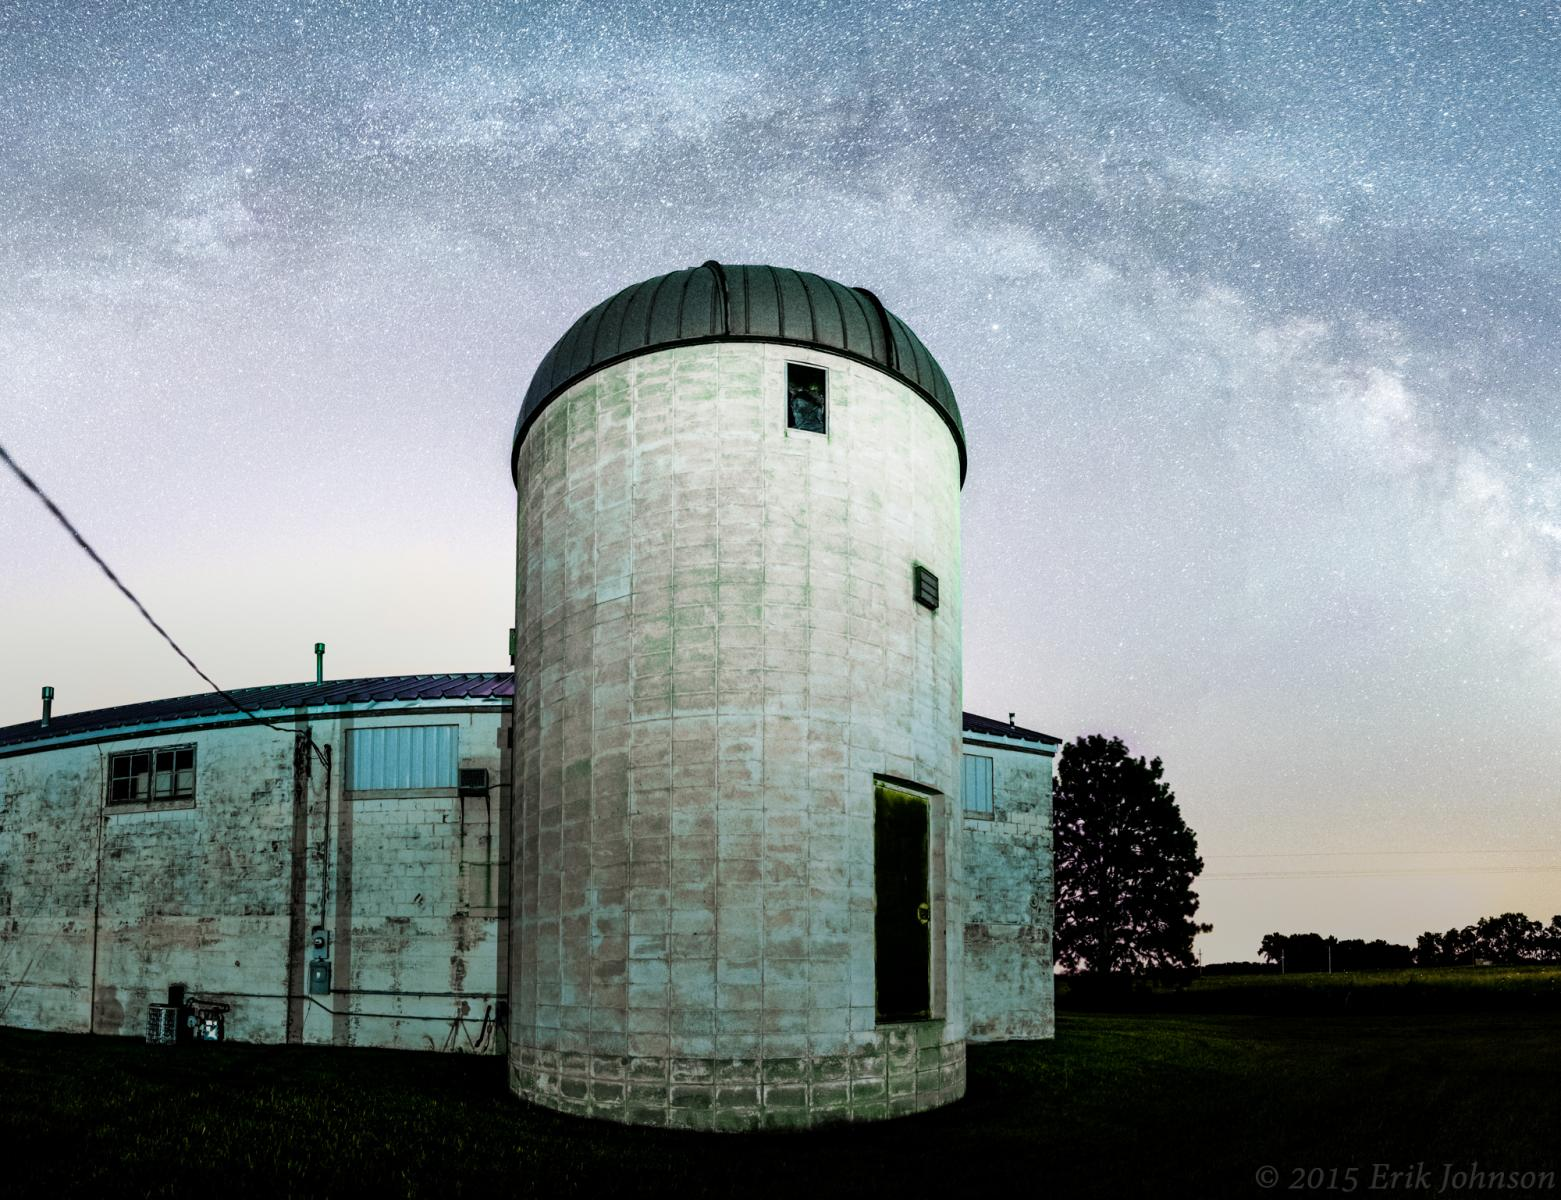 Milky Way in the sky above Behlen Observatory